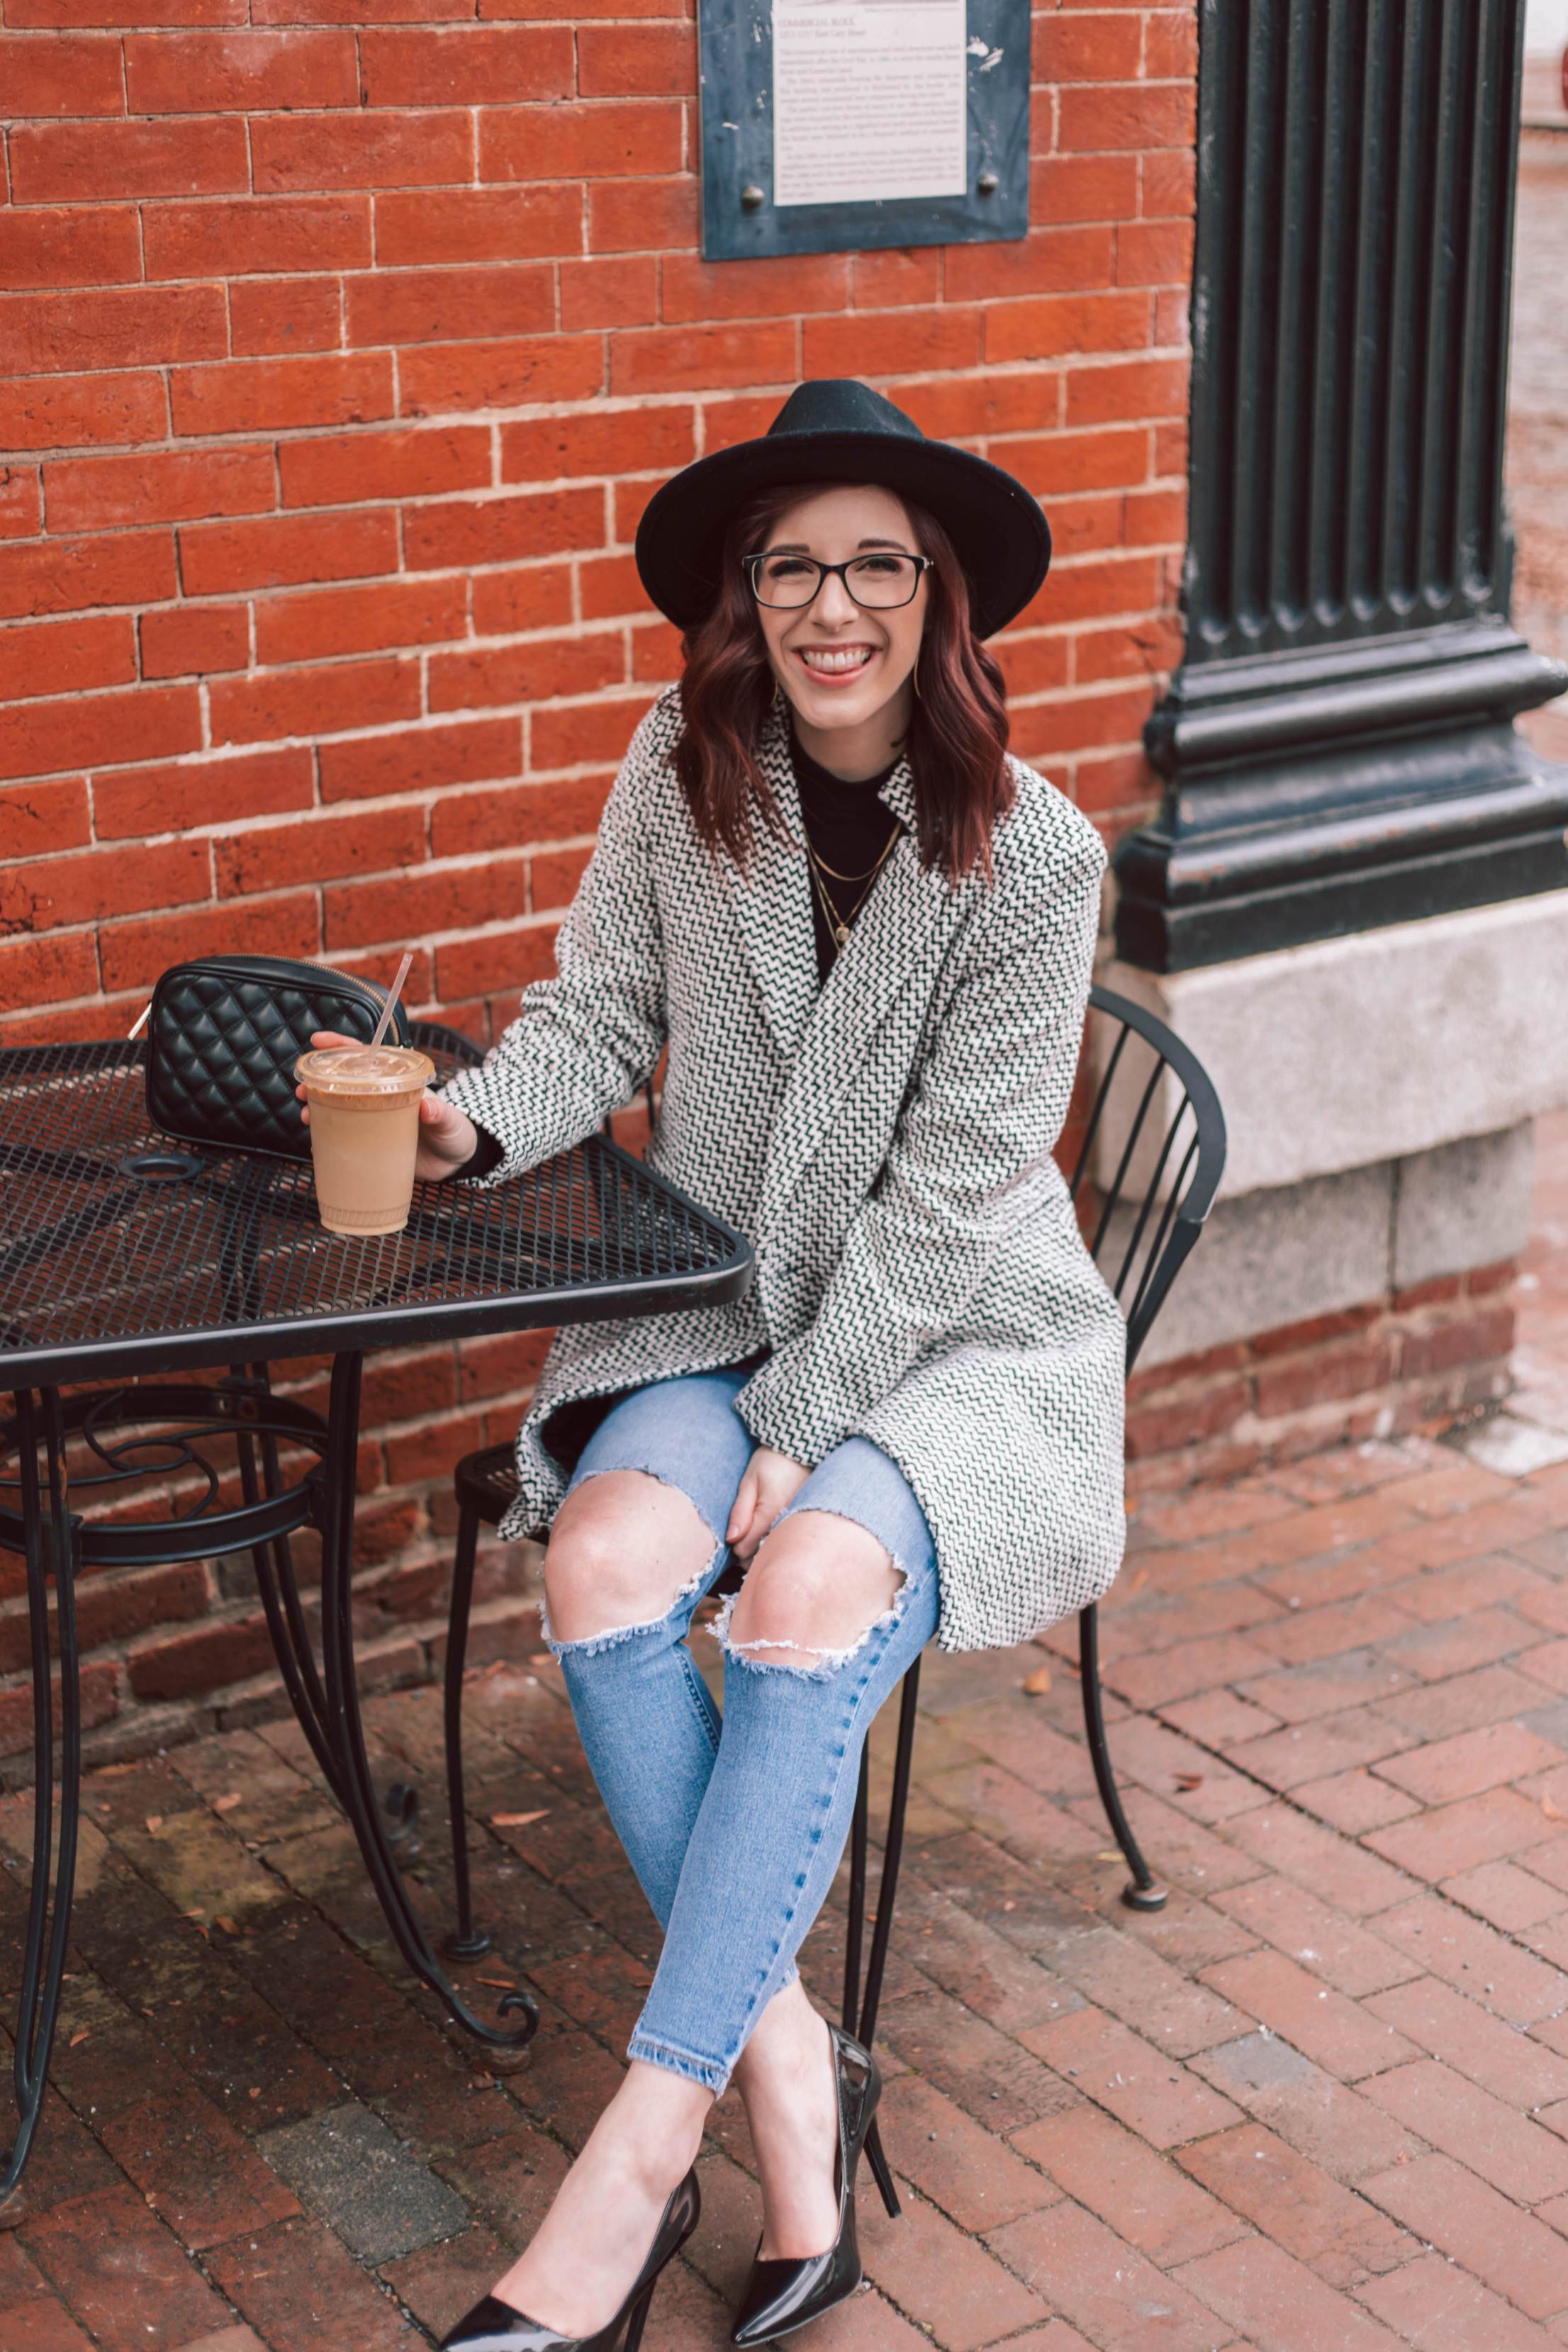 A Foolproof Winter Outfit That's Anything But Boring